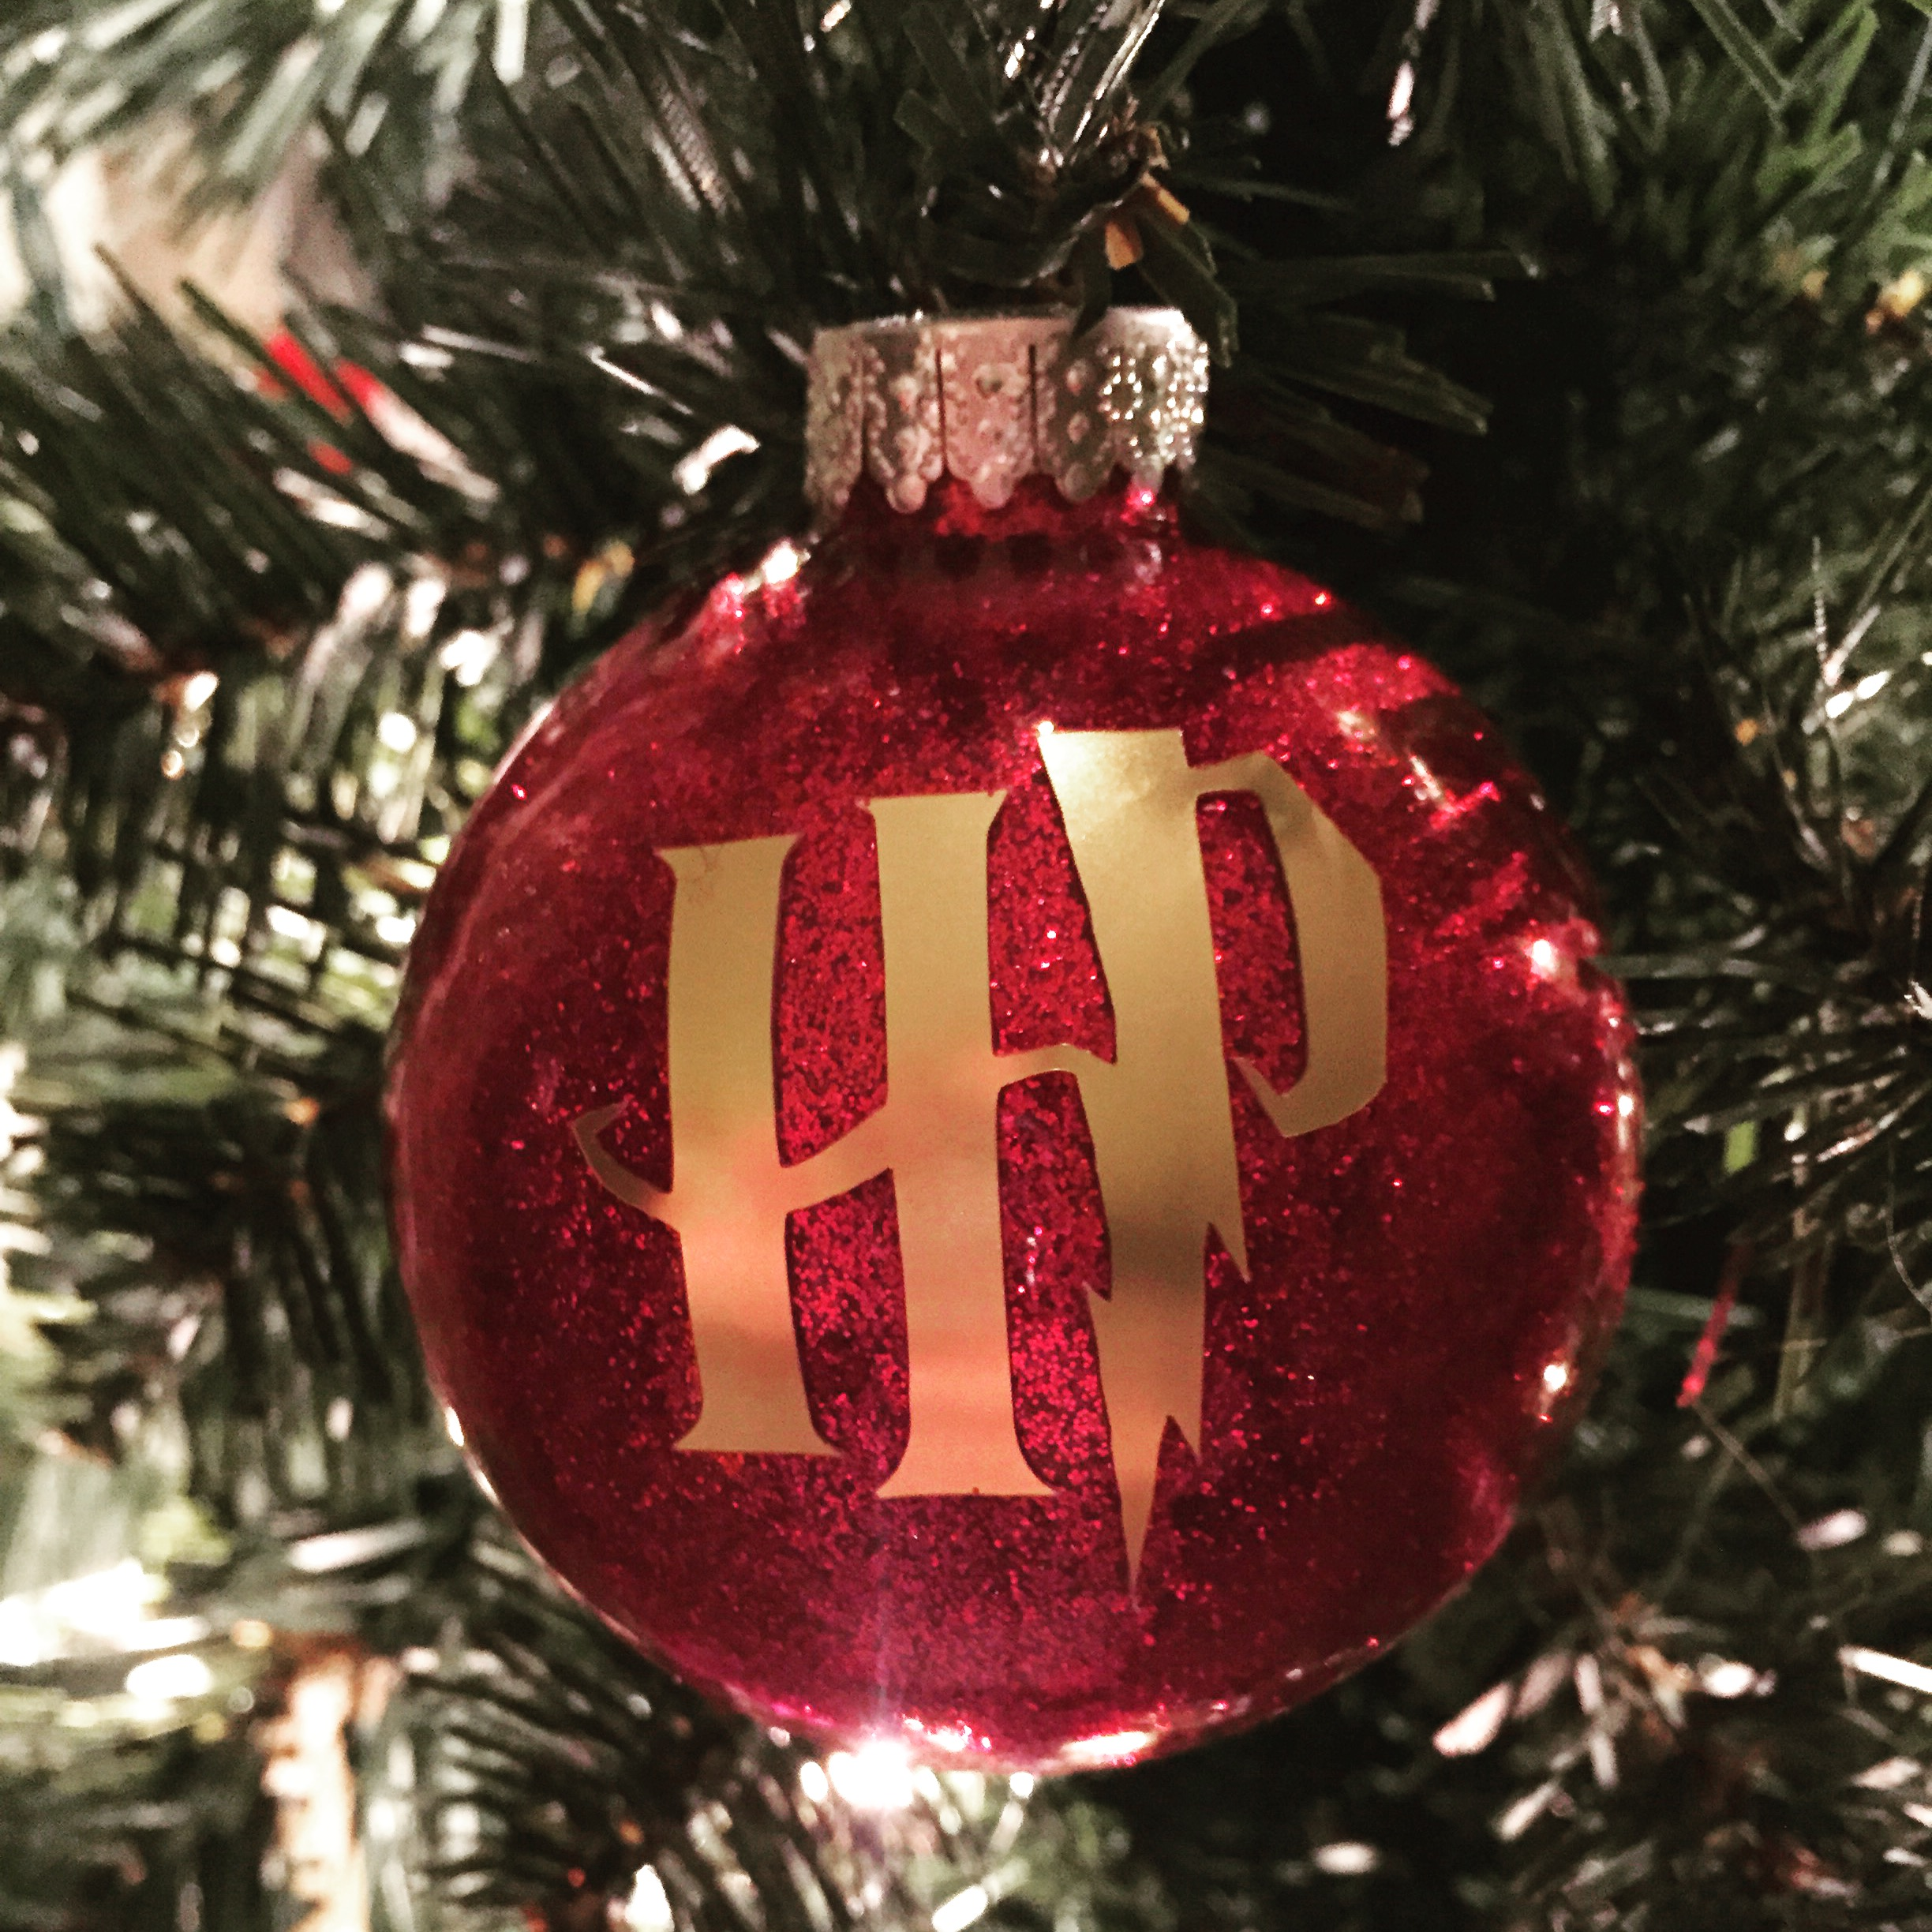 Harry Potter Ornament made with a DIY Glitter ornament and cricut vinyl